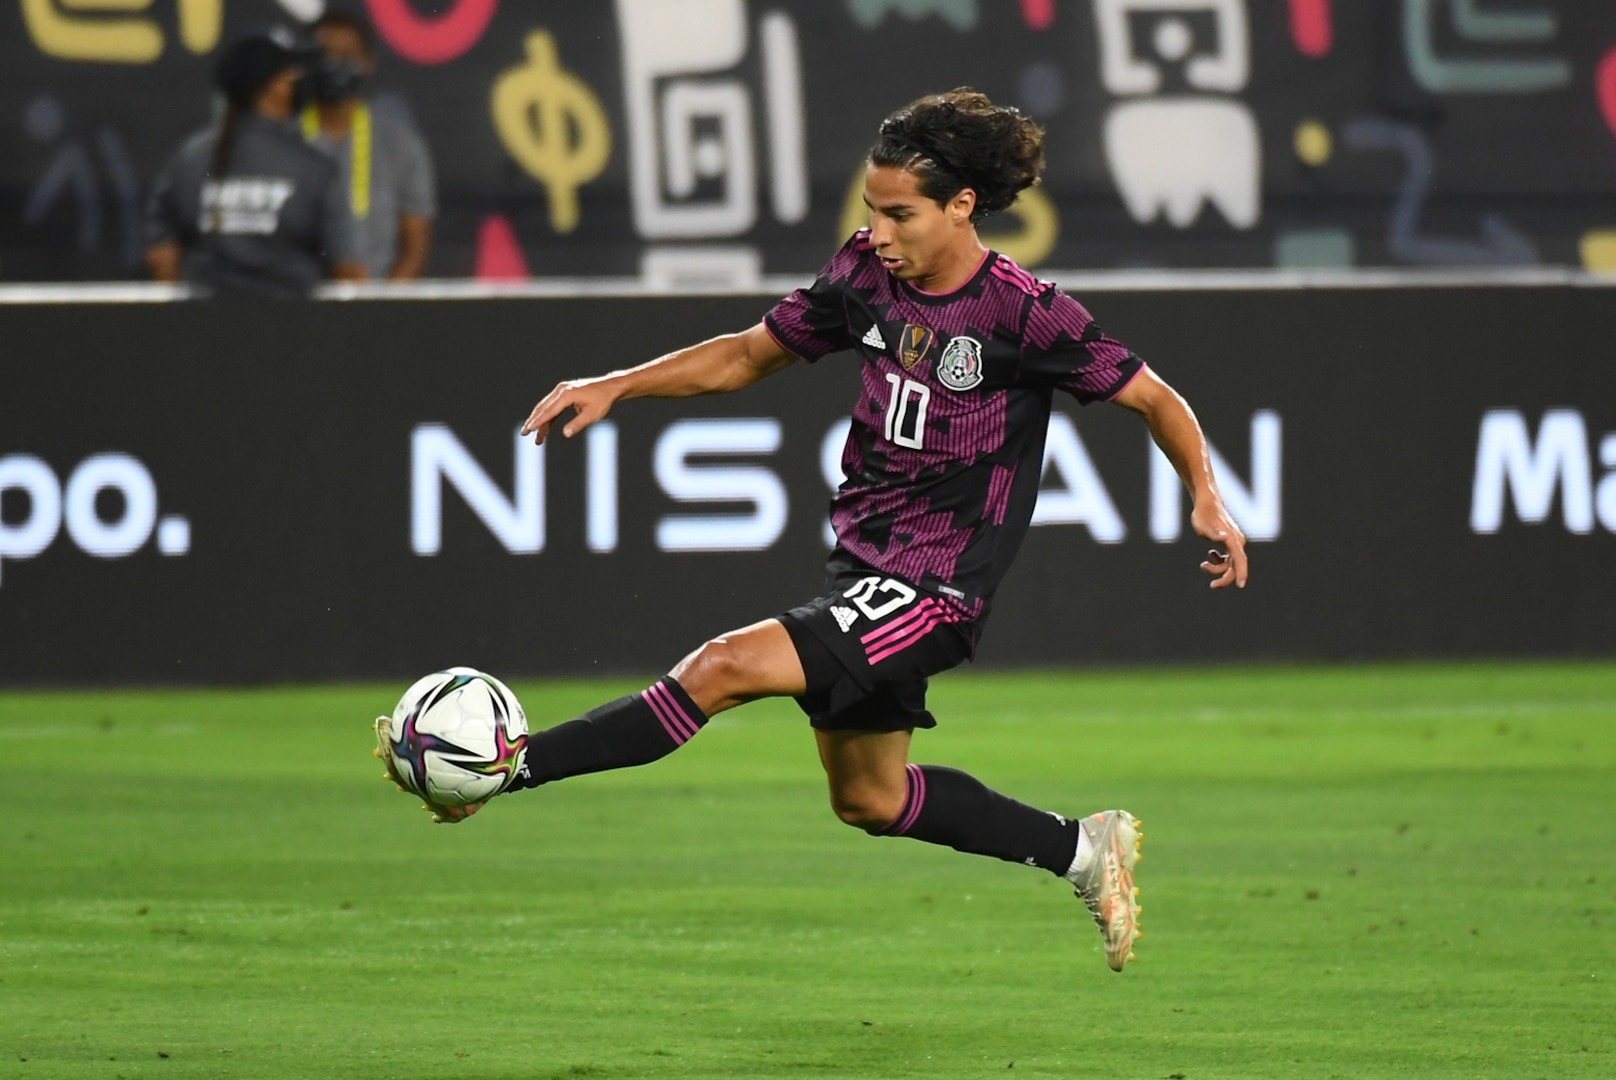 Mexico midfielder Diego Lainez playing in a senior national team friendly against Panama in Nashville.